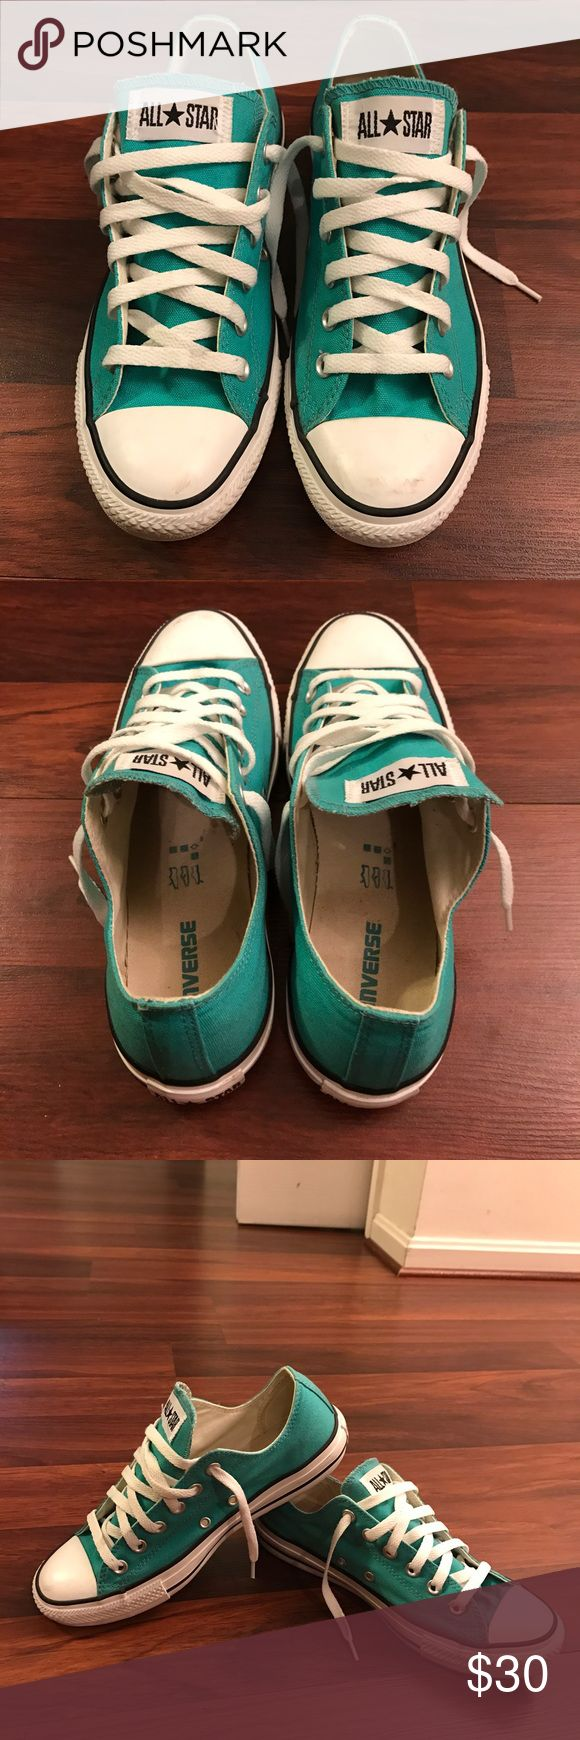 Converse Chucks Low Turquoise Converse Chucks Low Turquoise Sz. Women's 9/ Men's 7  Flaws: scuffs on toe of both shoes. Normal wear all over. Great Condition Converse Shoes Sneakers